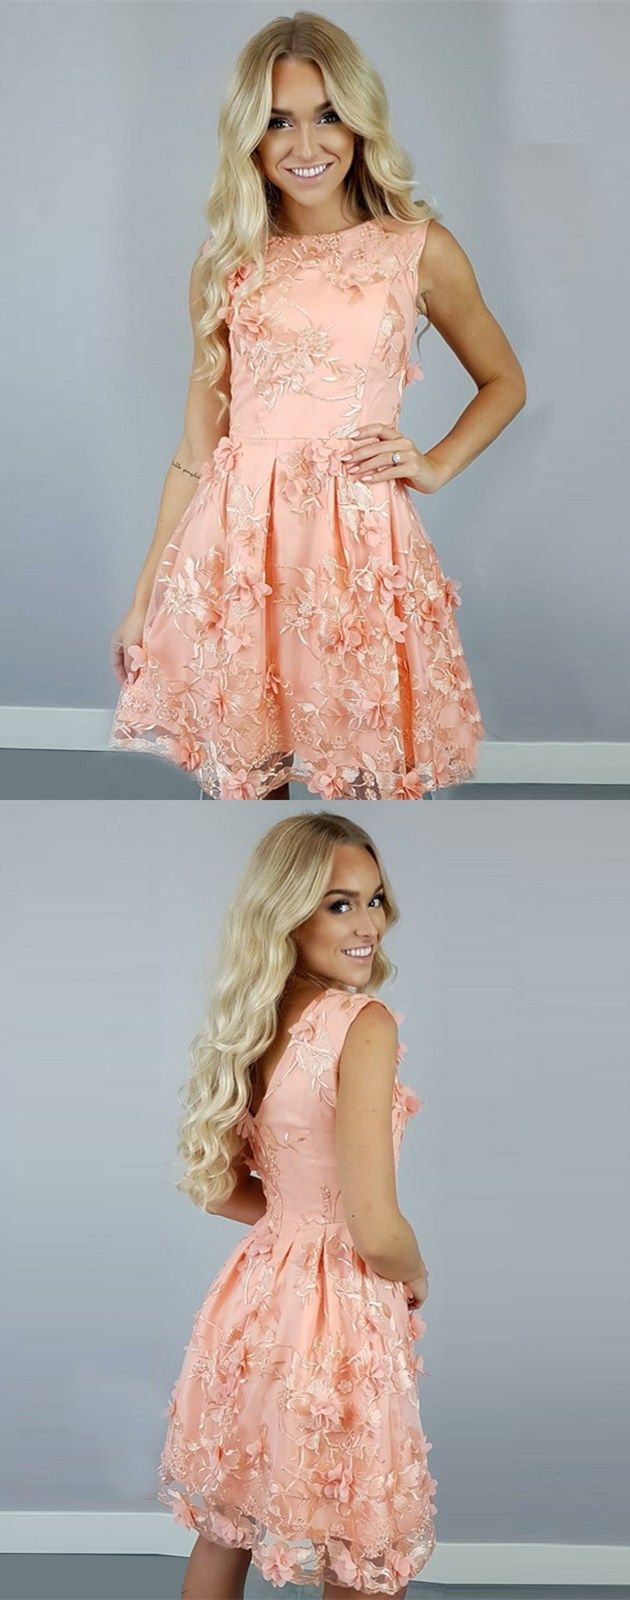 Aline bateau peach tulle short homecoming dress with flowers